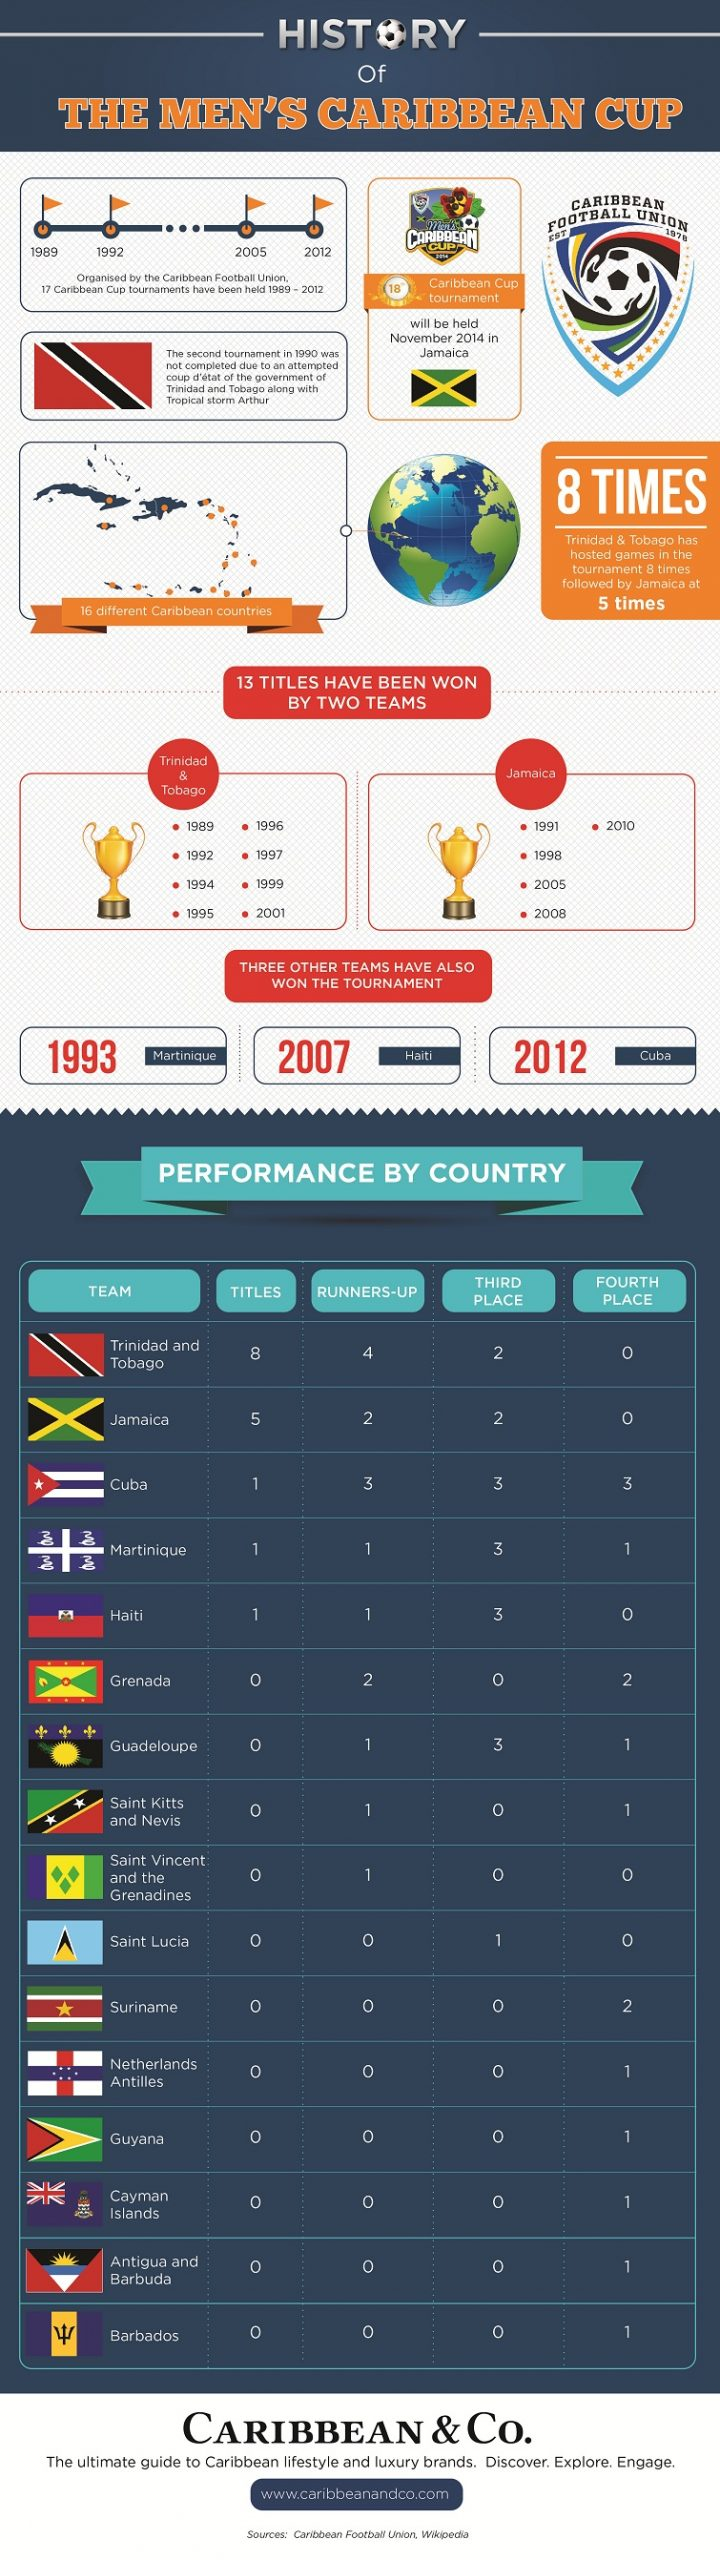 History of Men's Caribbean Cup